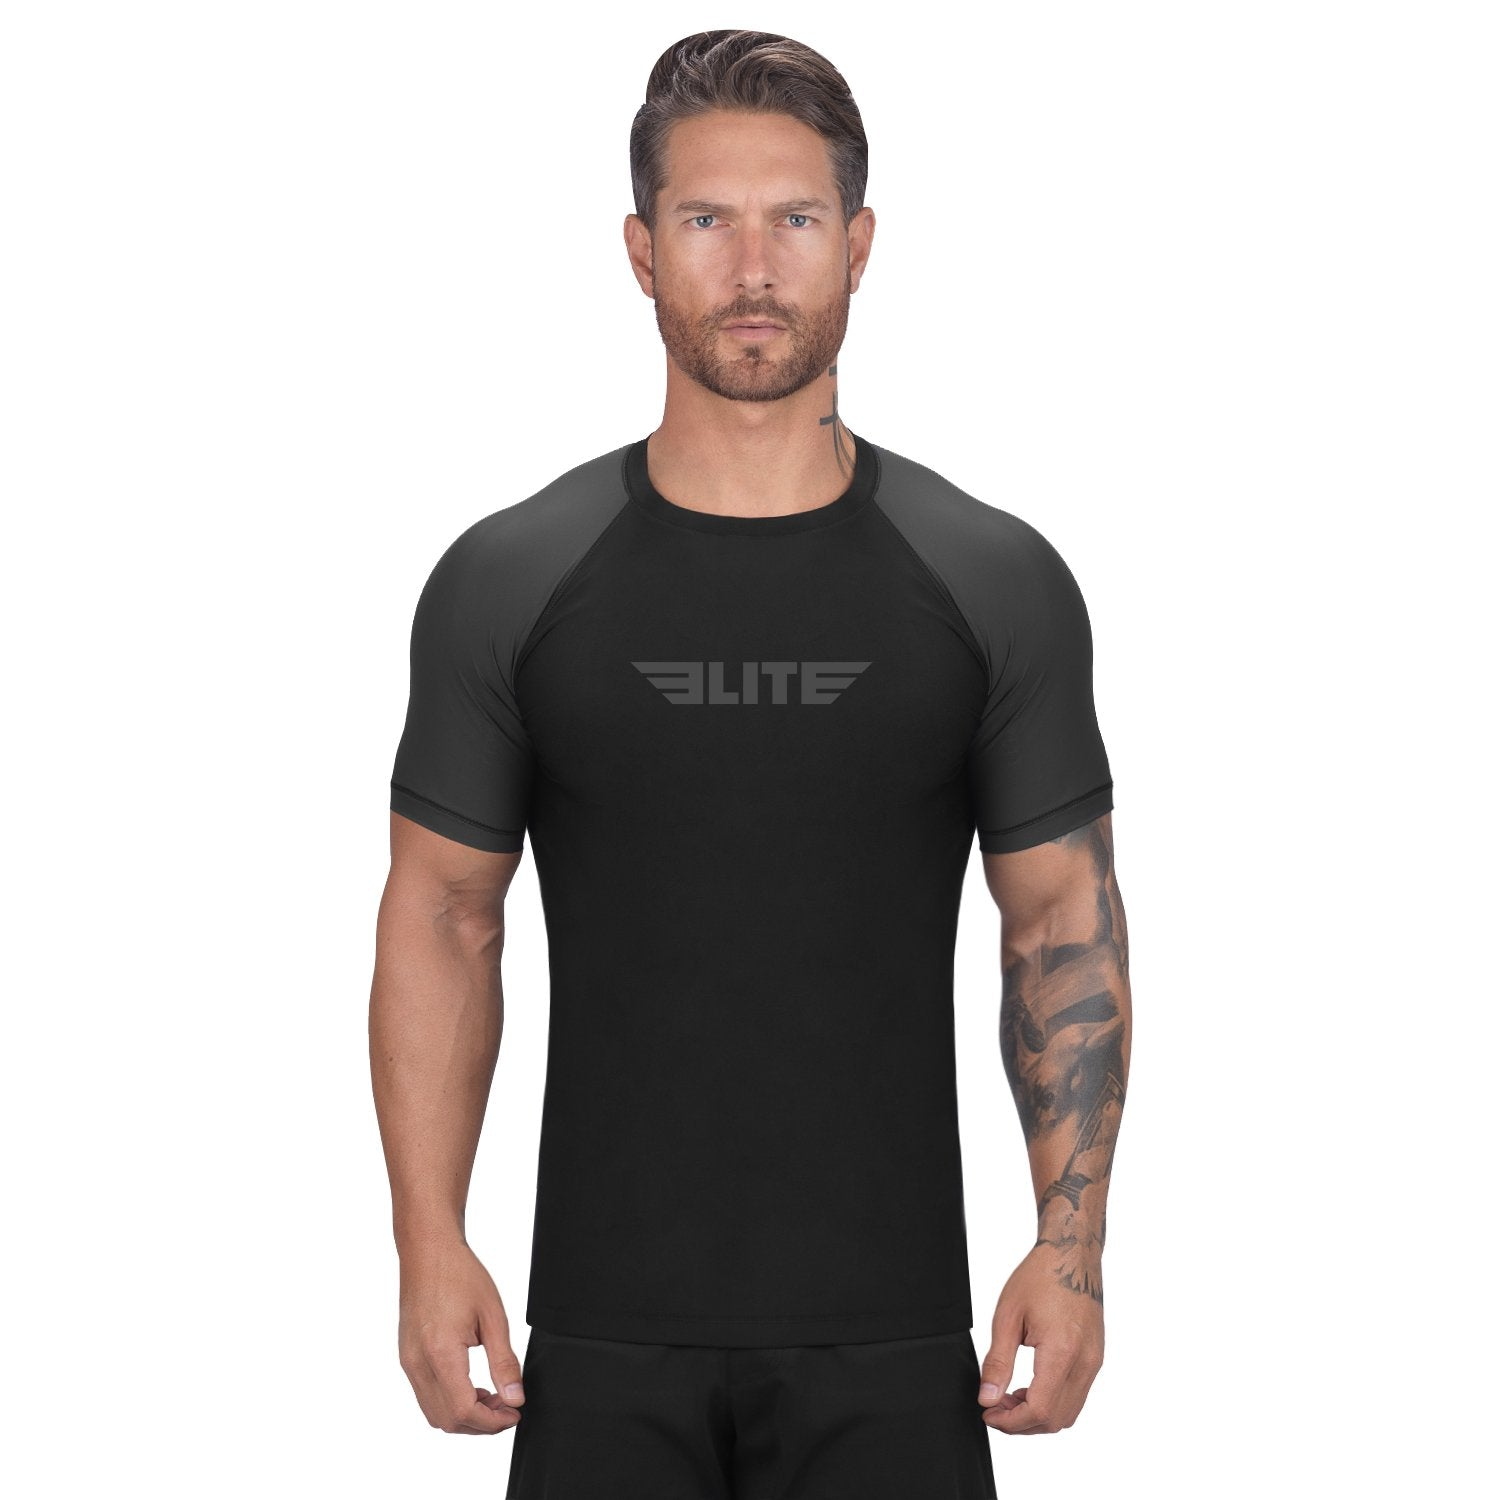 Elite Sports Standard Black/Gray Short Sleeve Brazilian Jiu Jitsu BJJ Rash Guard